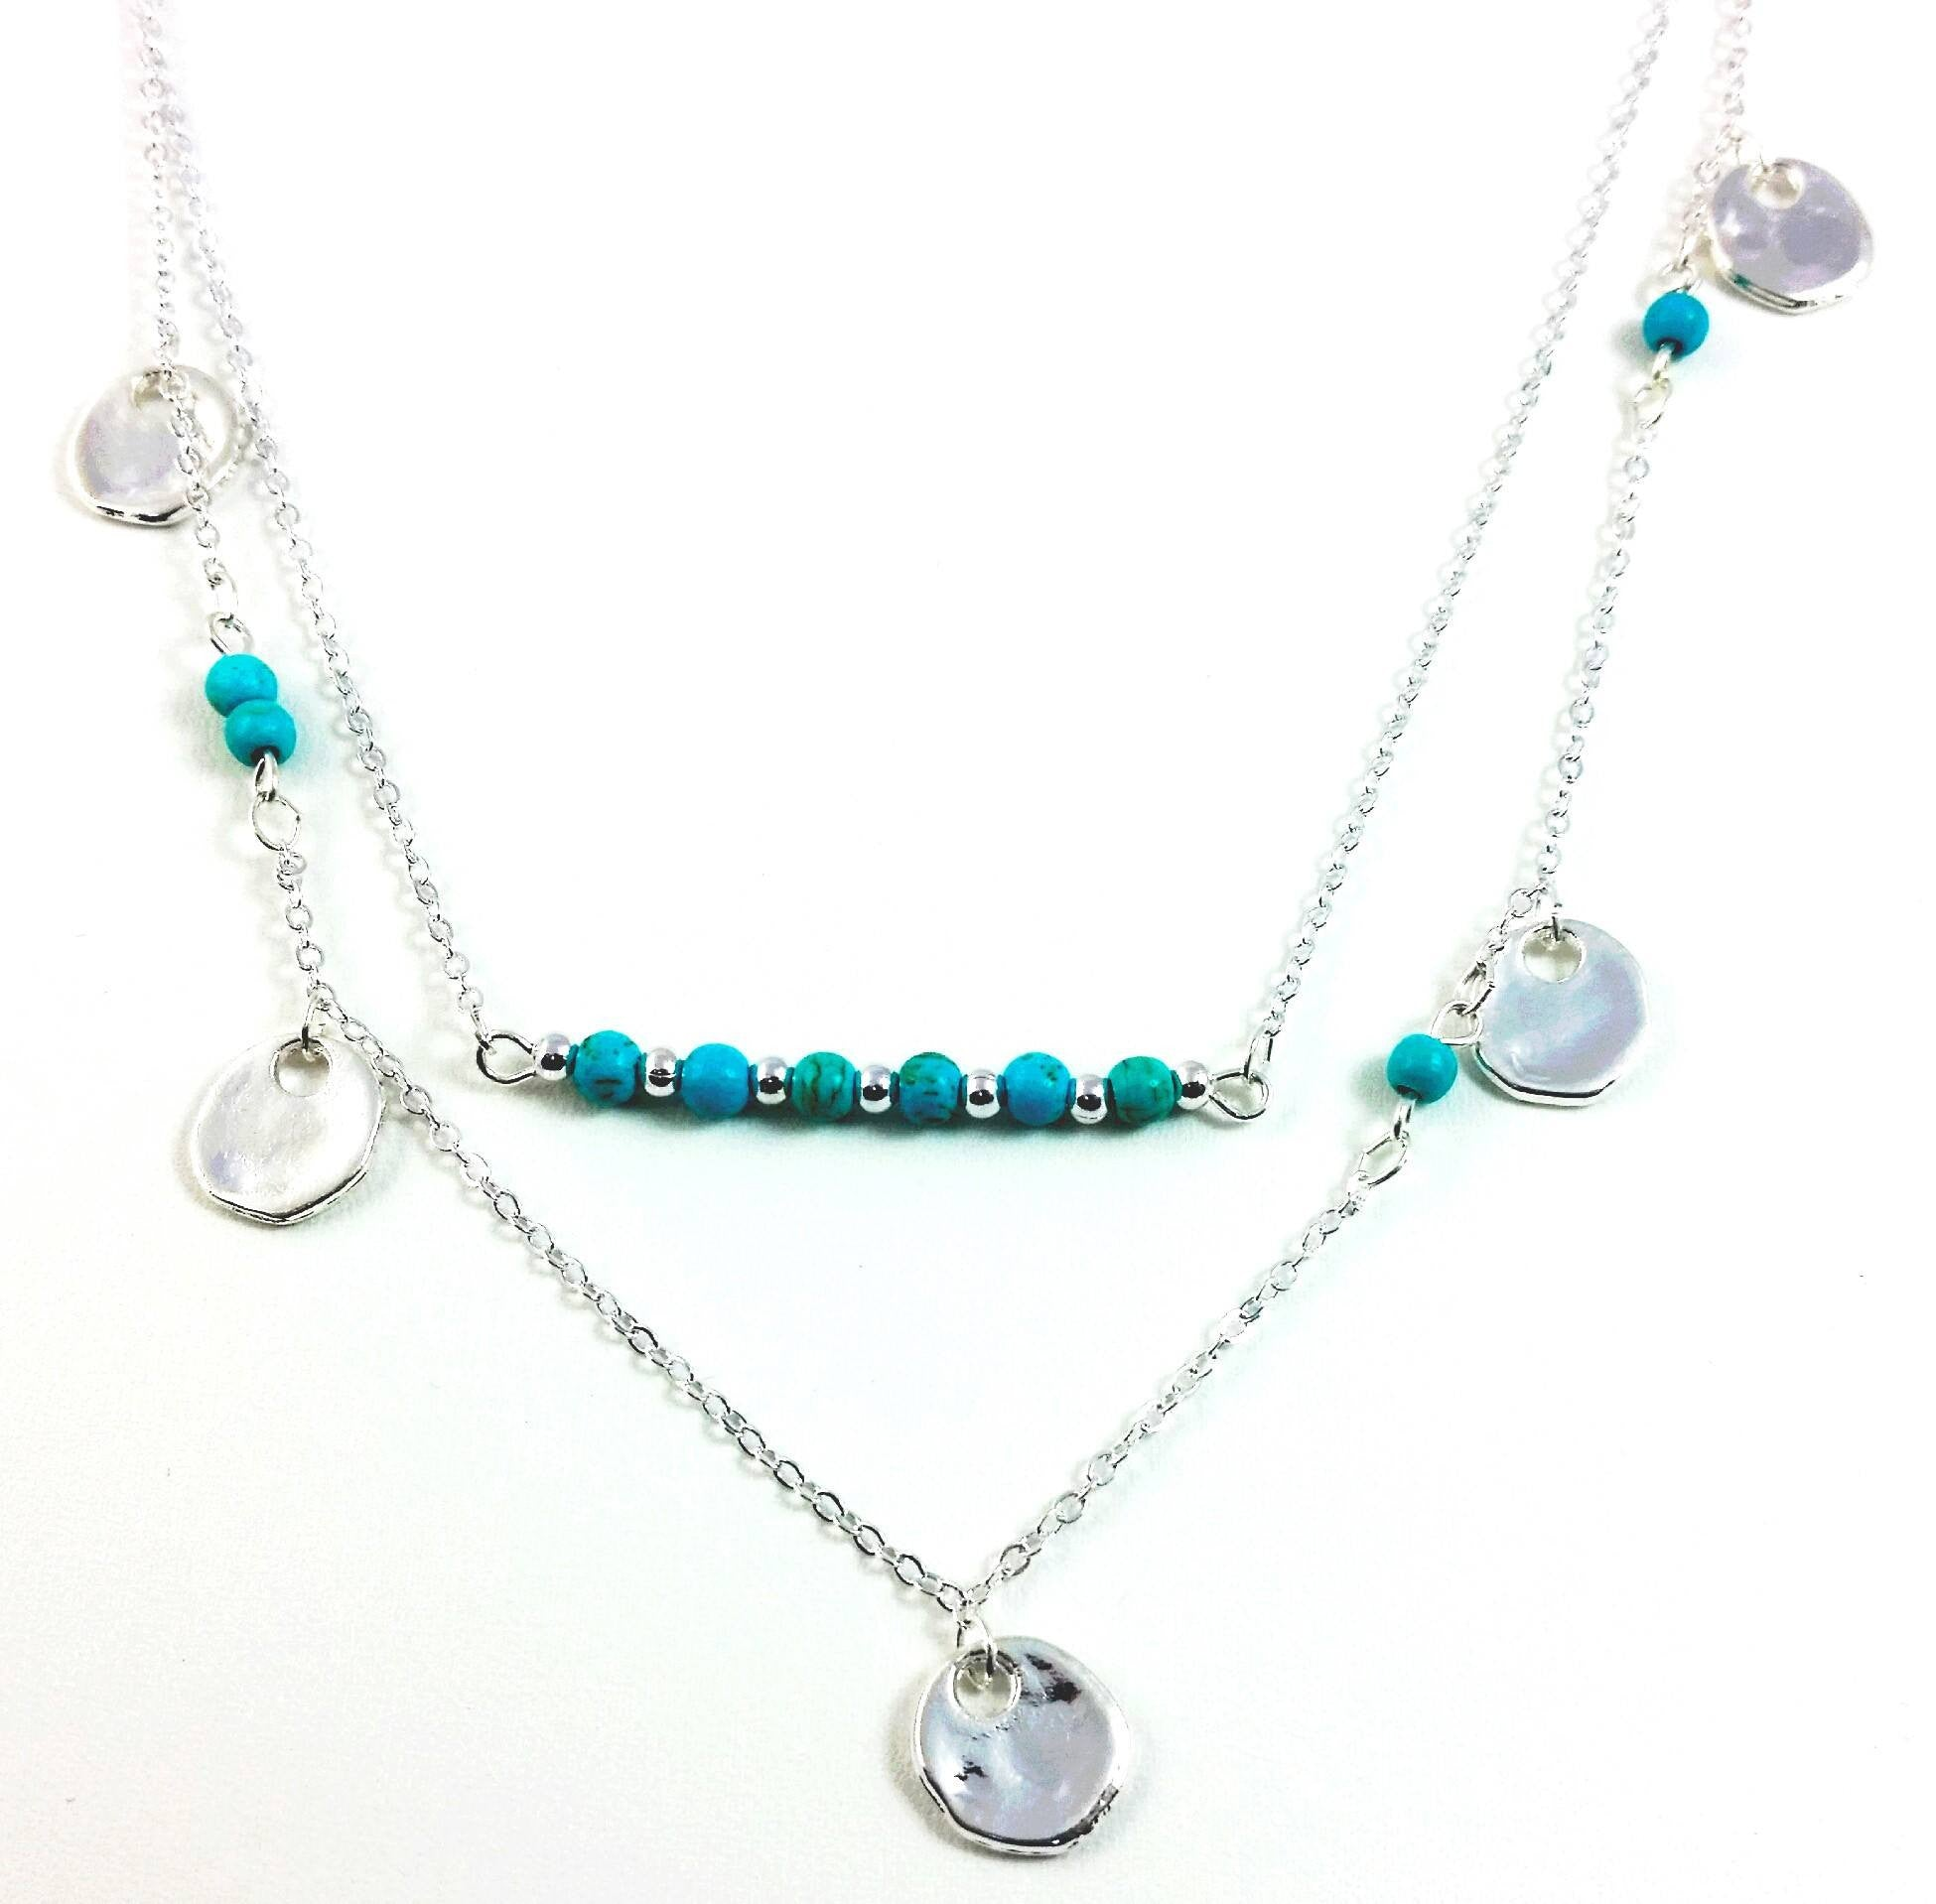 oliver jewellery circle silver necklace bonas turquoise lyca